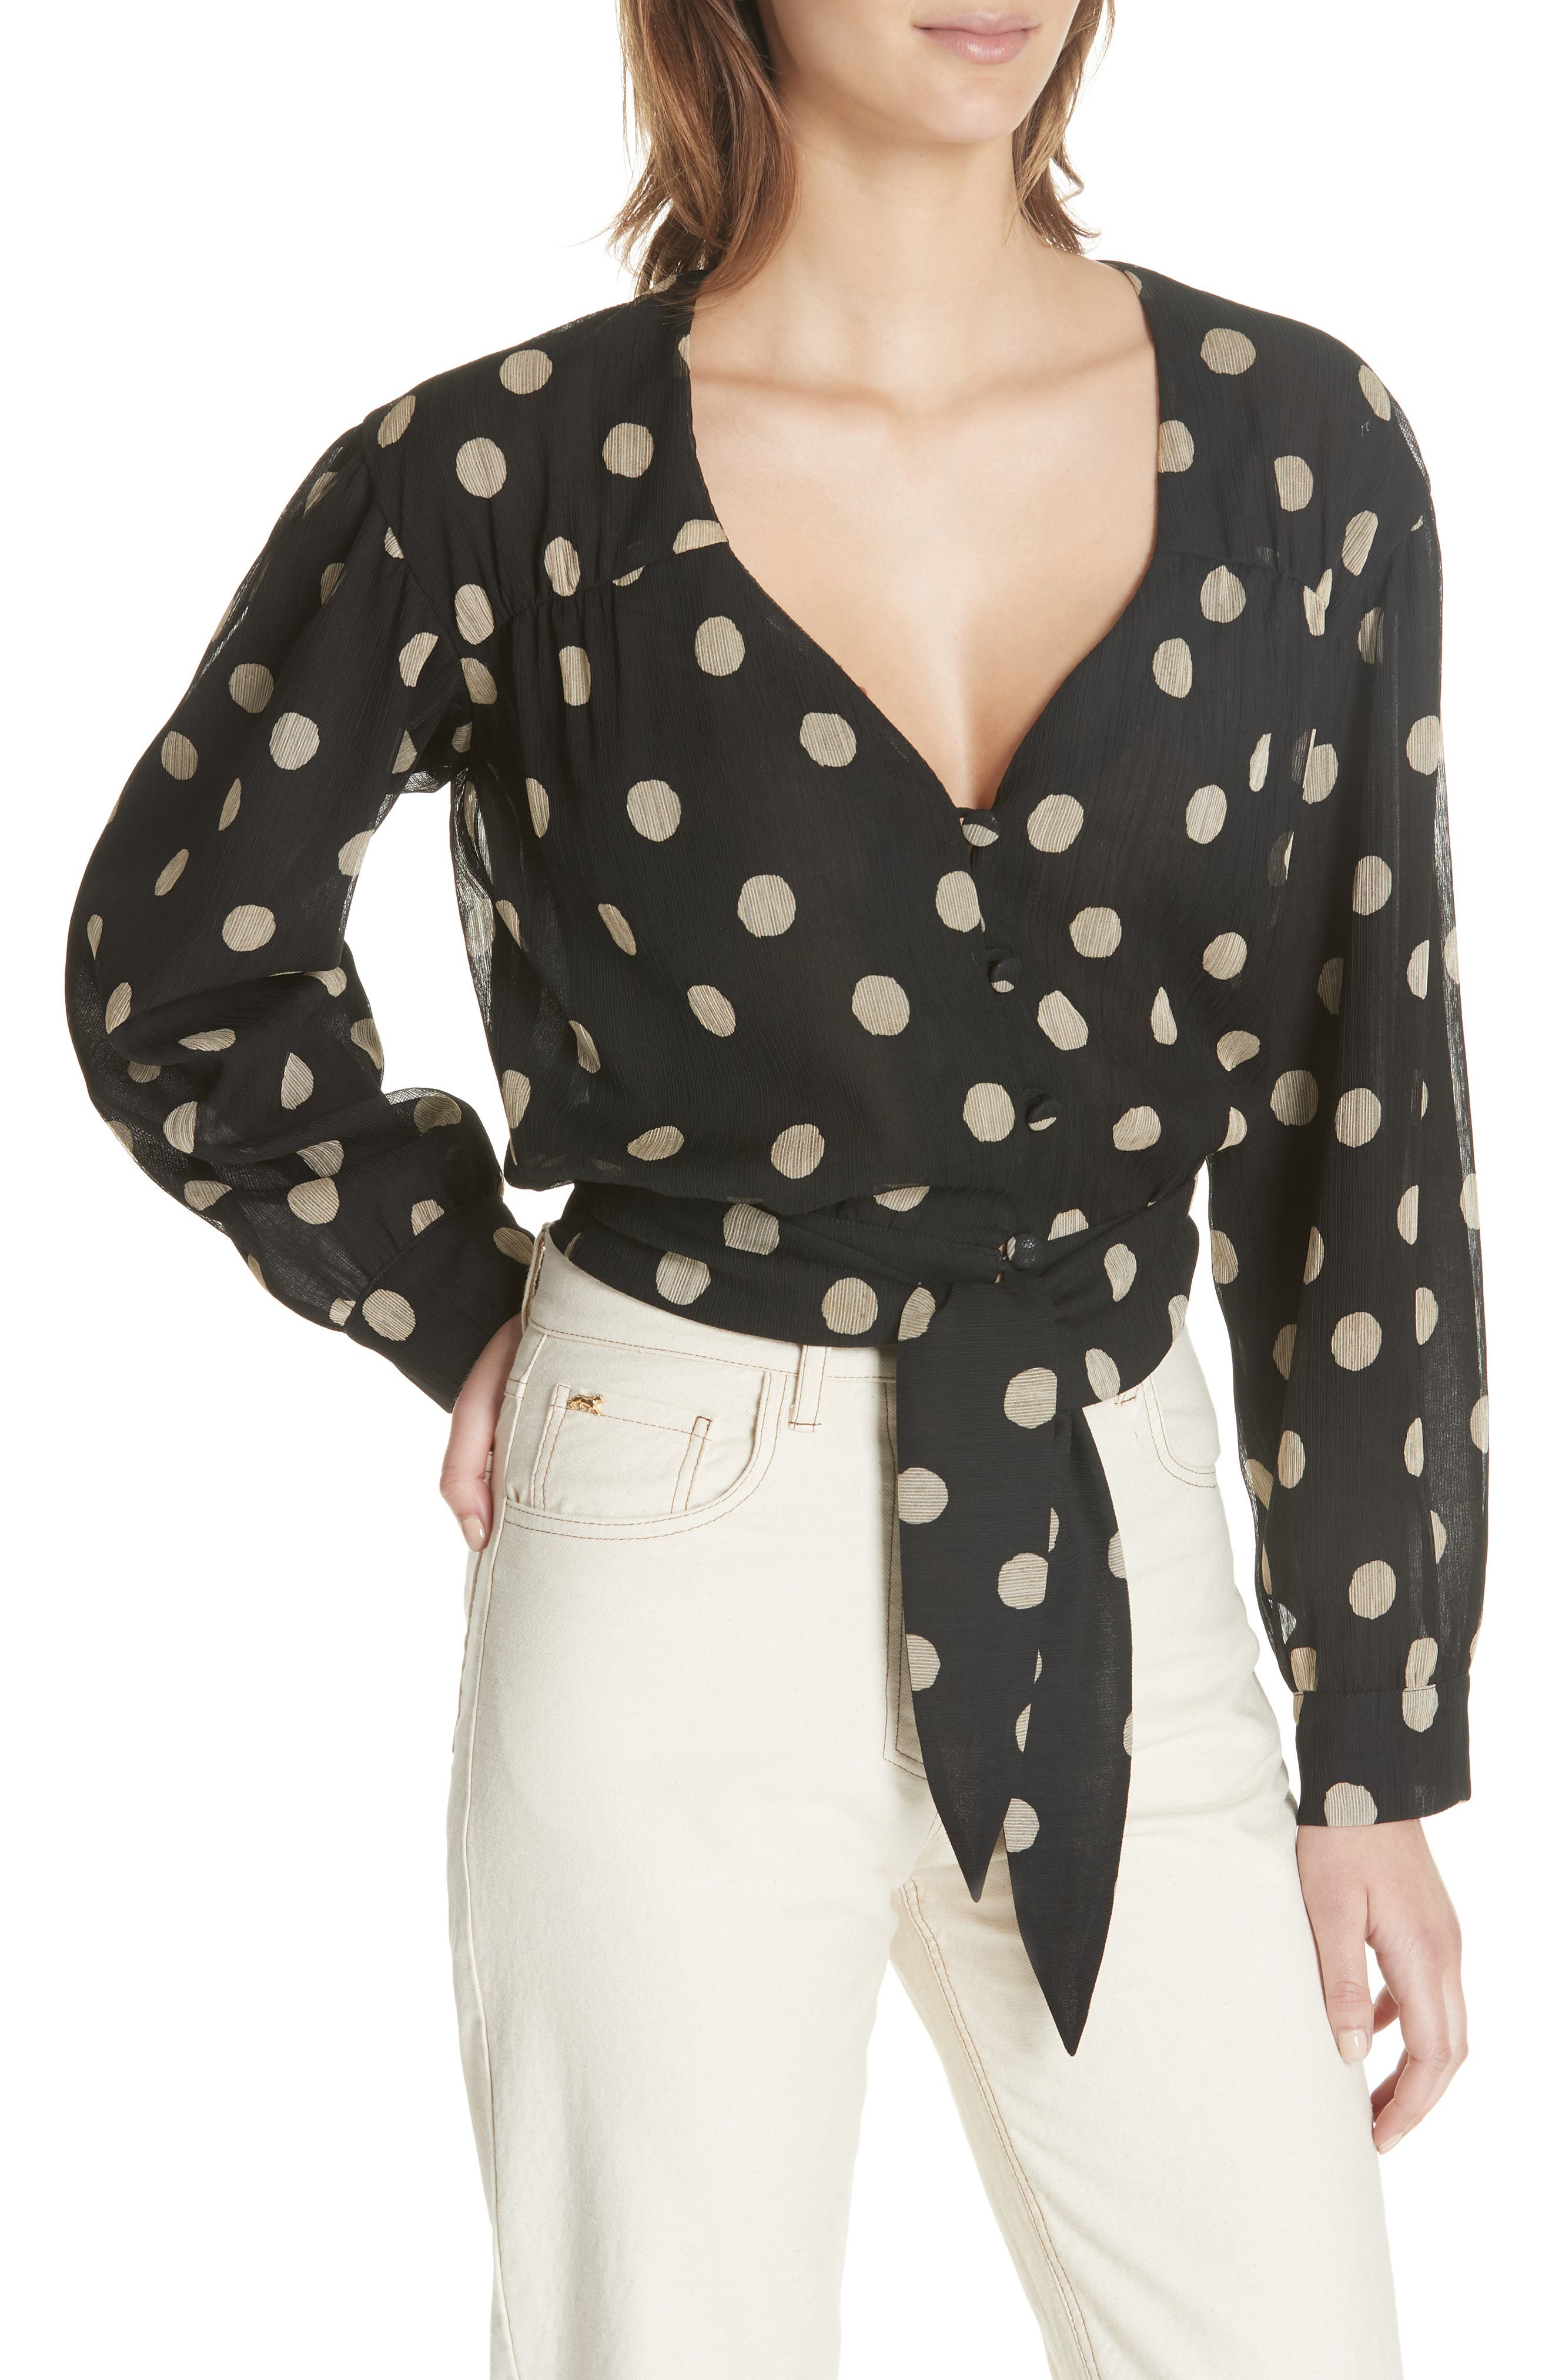 NANUSHKA,                             Amulet Polka Dot Tech Chiffon Blouse,                             Alternate thumbnail 4, color,                             001